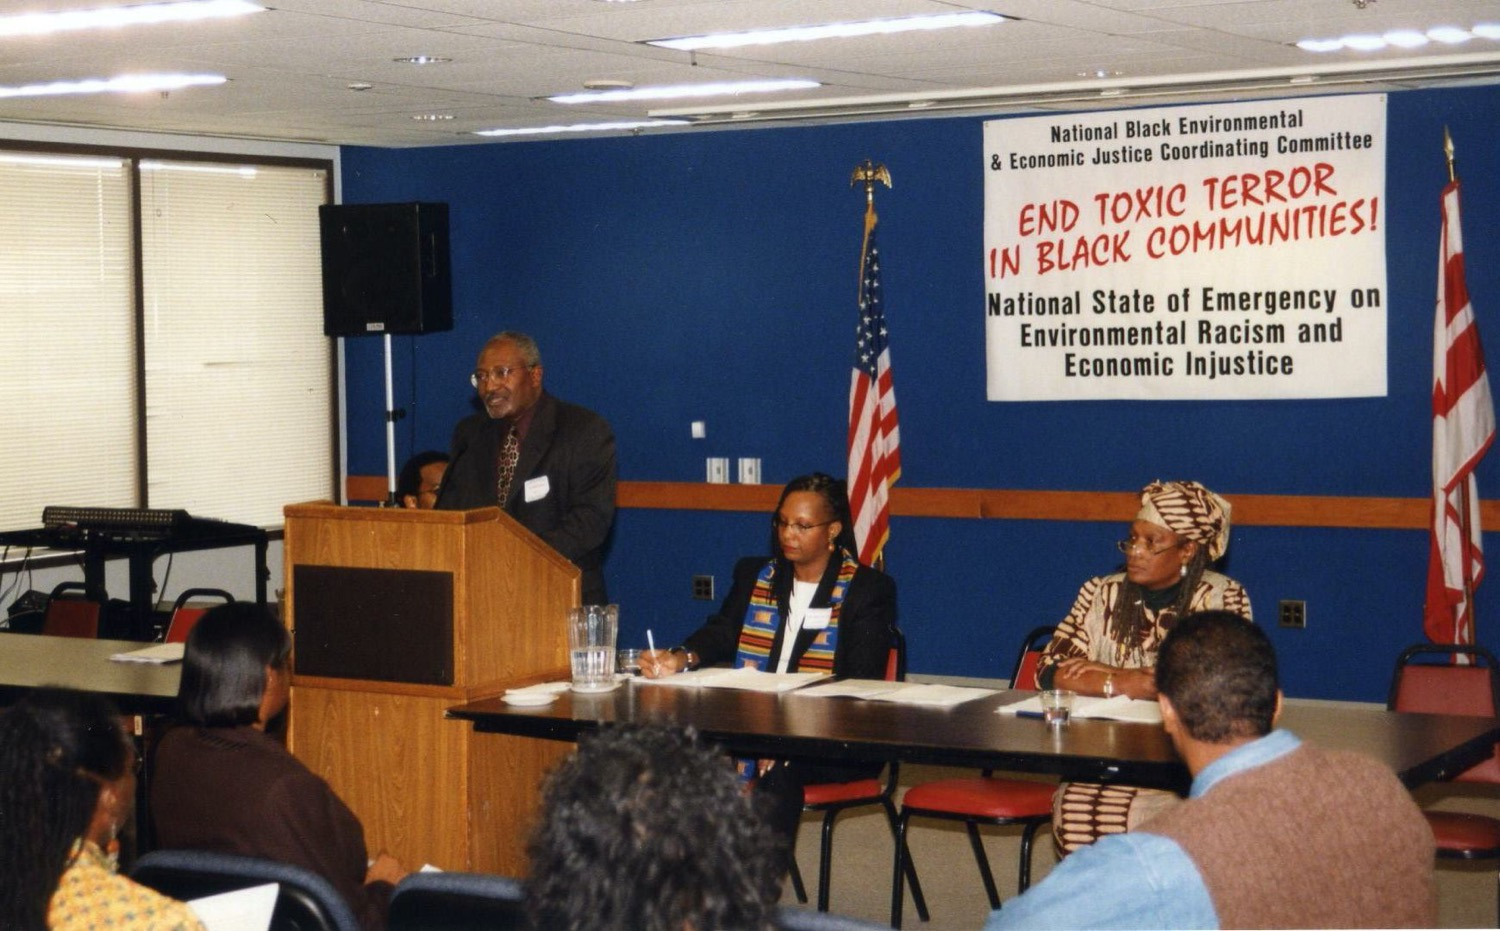 """a black man speaks at a podium. next to him are two other black leaders at a panel table. behind them is a sign that can be partially read """"end toxic... in black communities."""""""